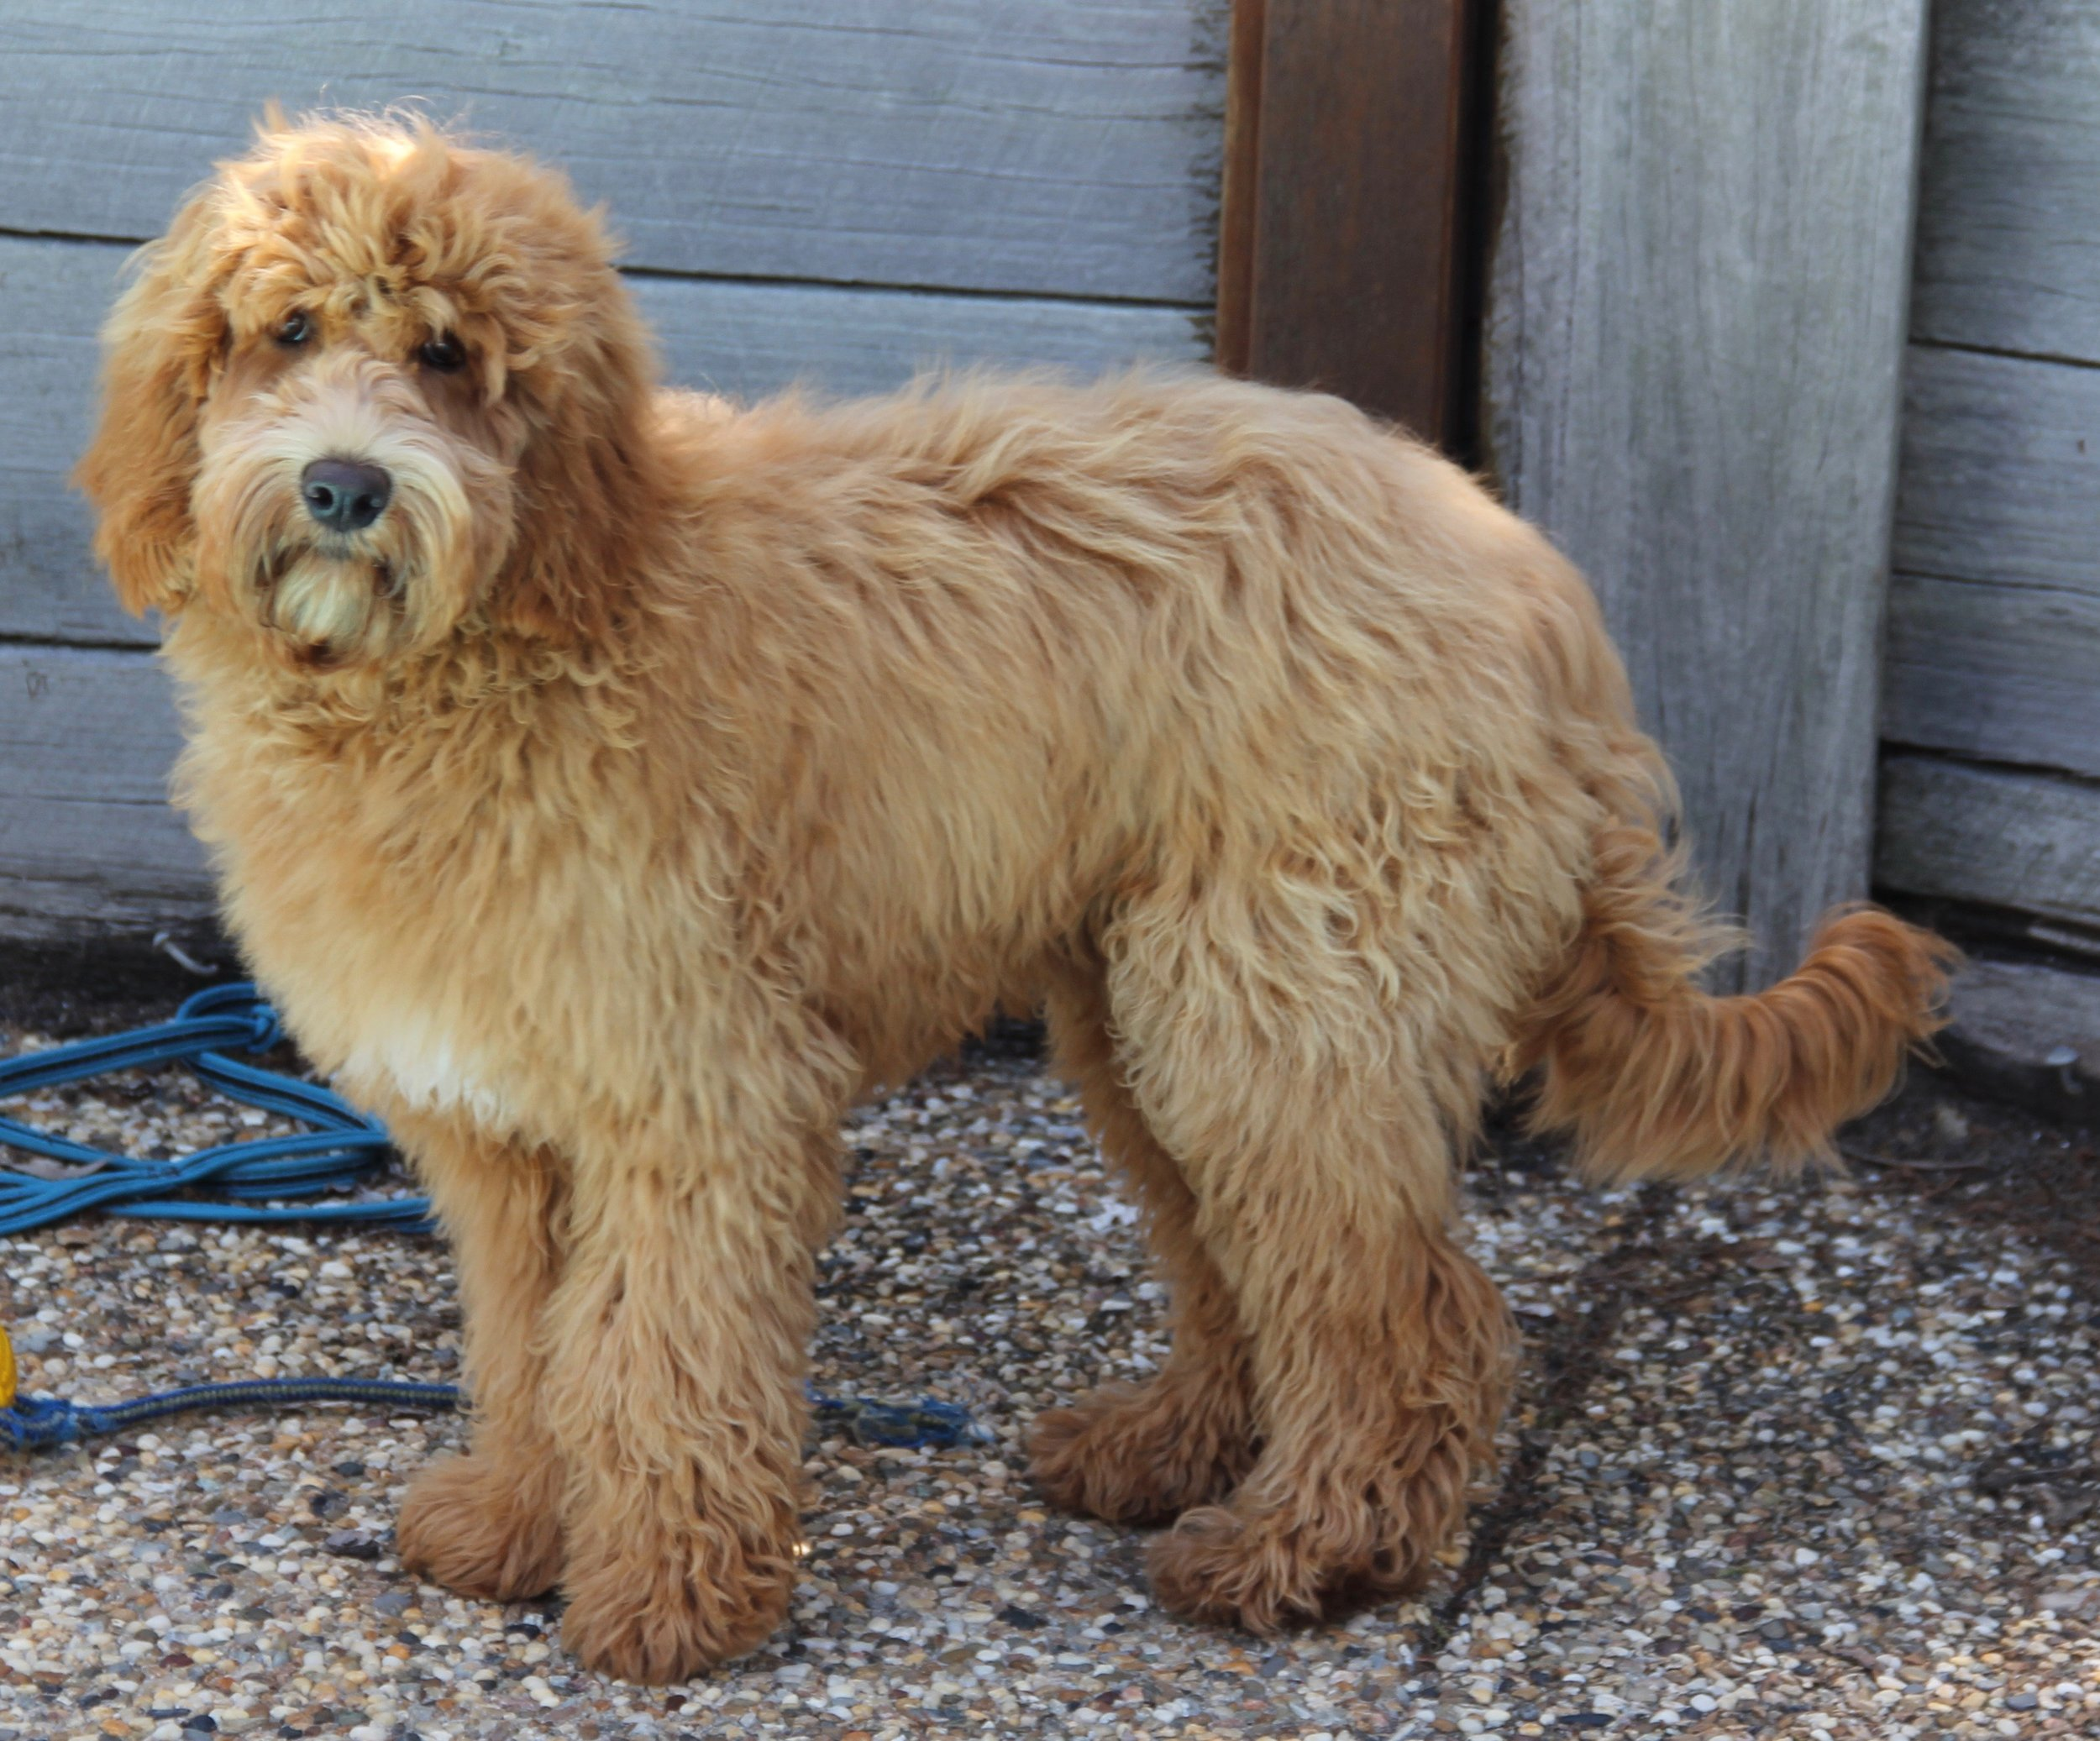 The Australian Labradoodle - The World Australian Labradoodle Association (WALA) website provides a lot of information about the Australian Labradoodle and I highly recommend that you visit this site as part of your research into this highly intelligent loving breed.